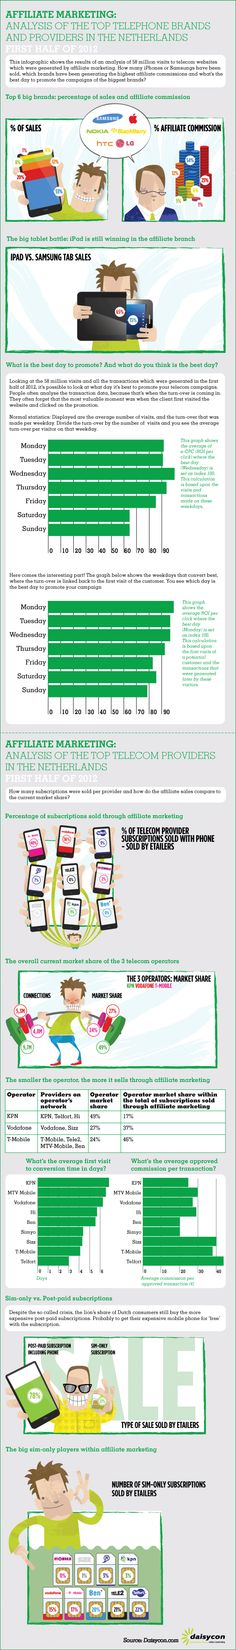 Infographic on affiliate marketing of the top telecom brands in the Netherlands